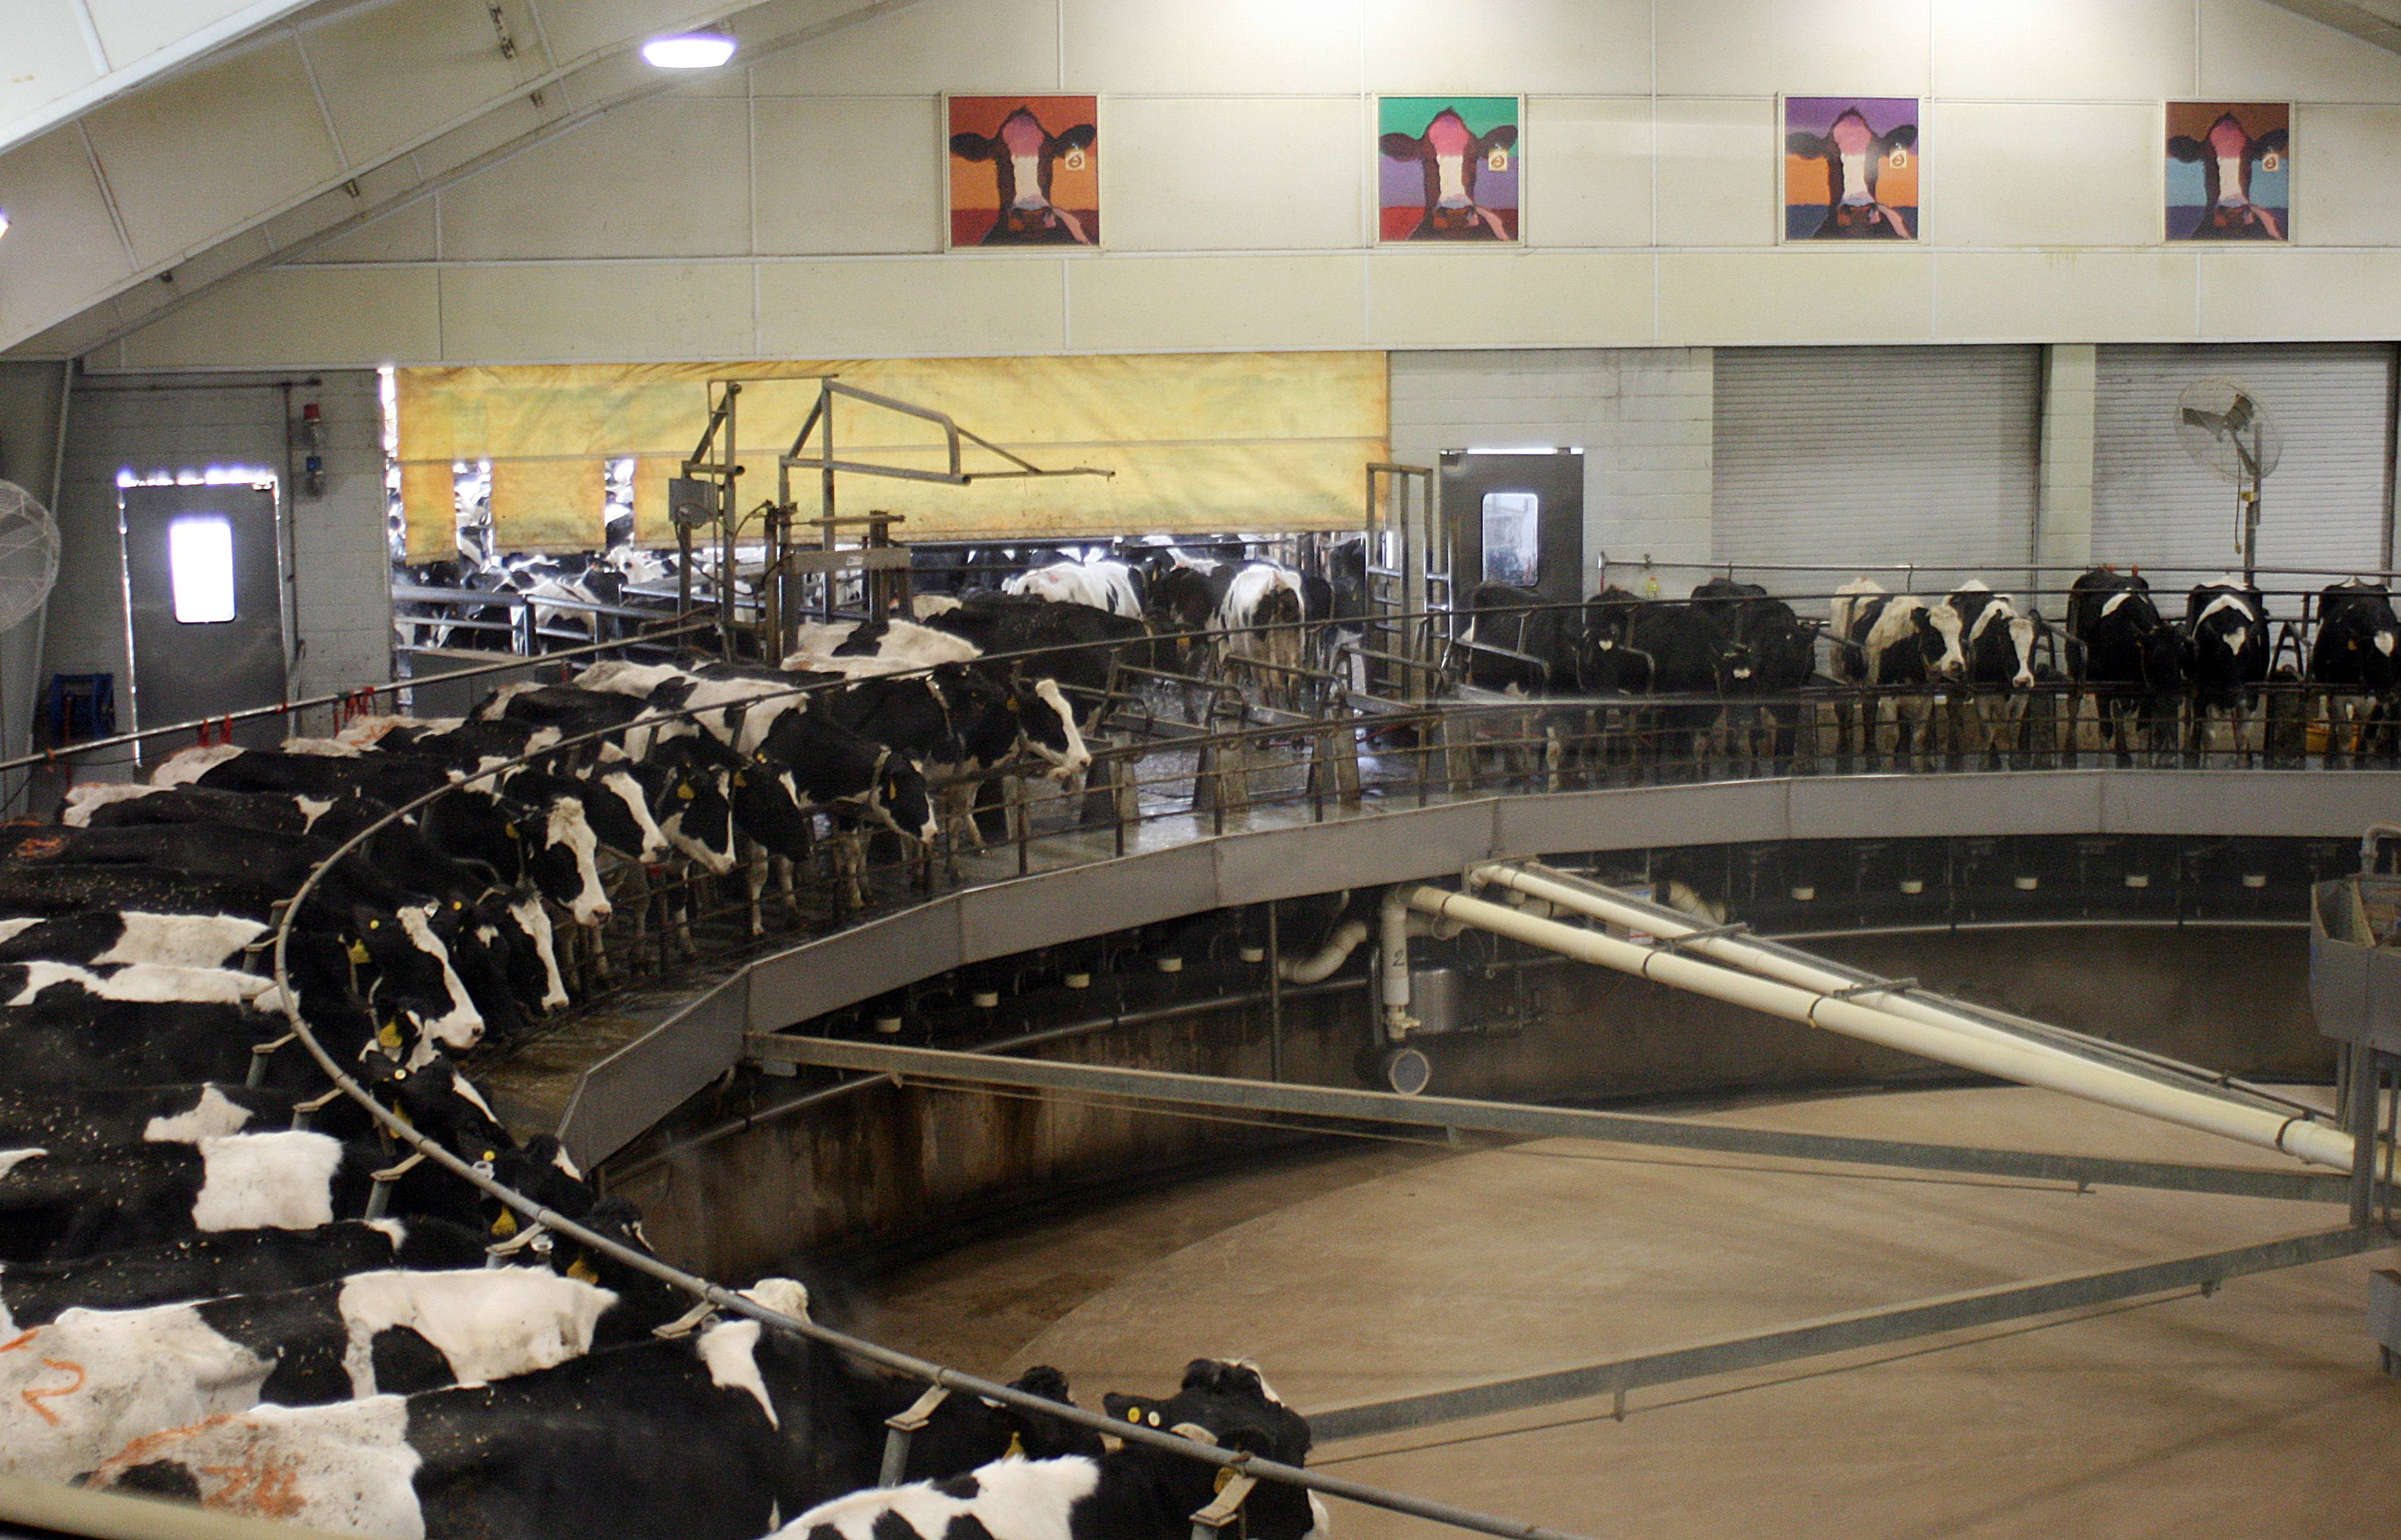 Dairy cows ride a rotating milking machine at Fair Oaks Farms in Fair Oaks, Ind.